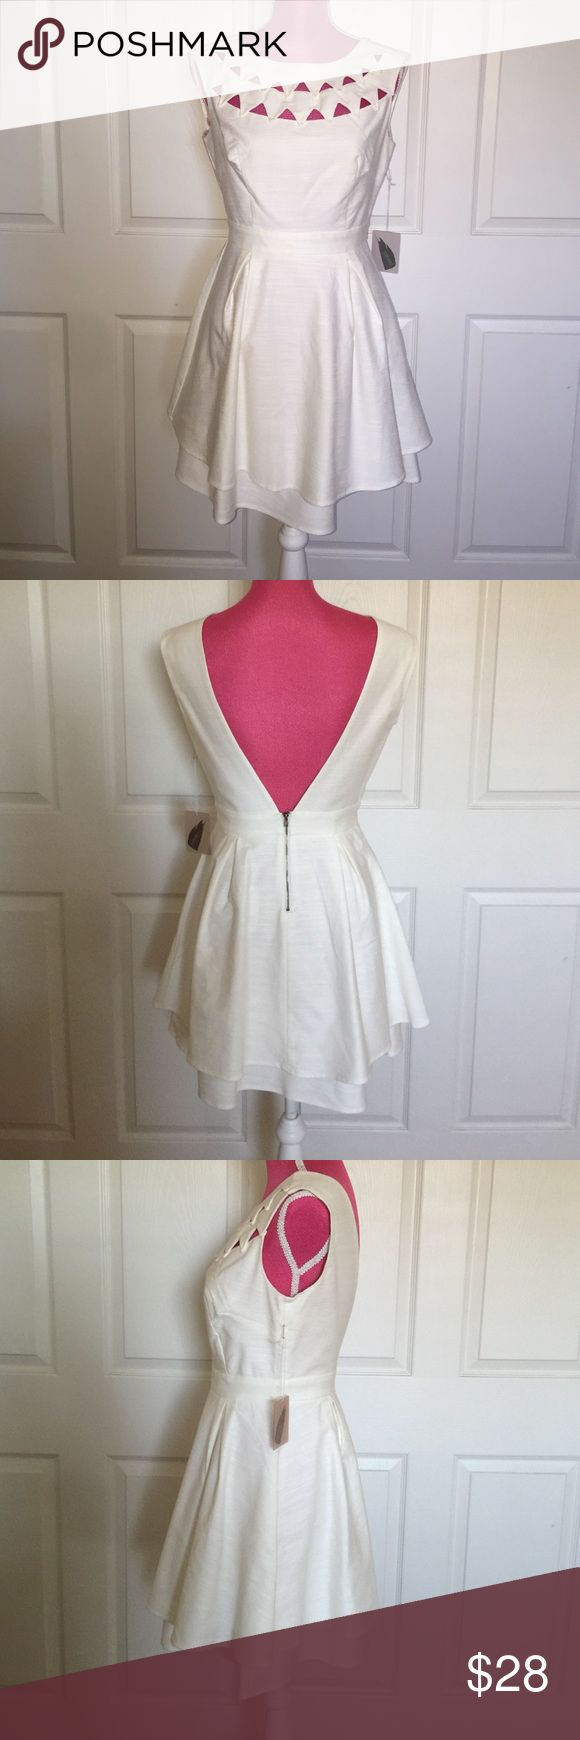 Forever 21 Ivory dress NWT Perfect summer dress. True to size Forever 21 Dresses Wedding